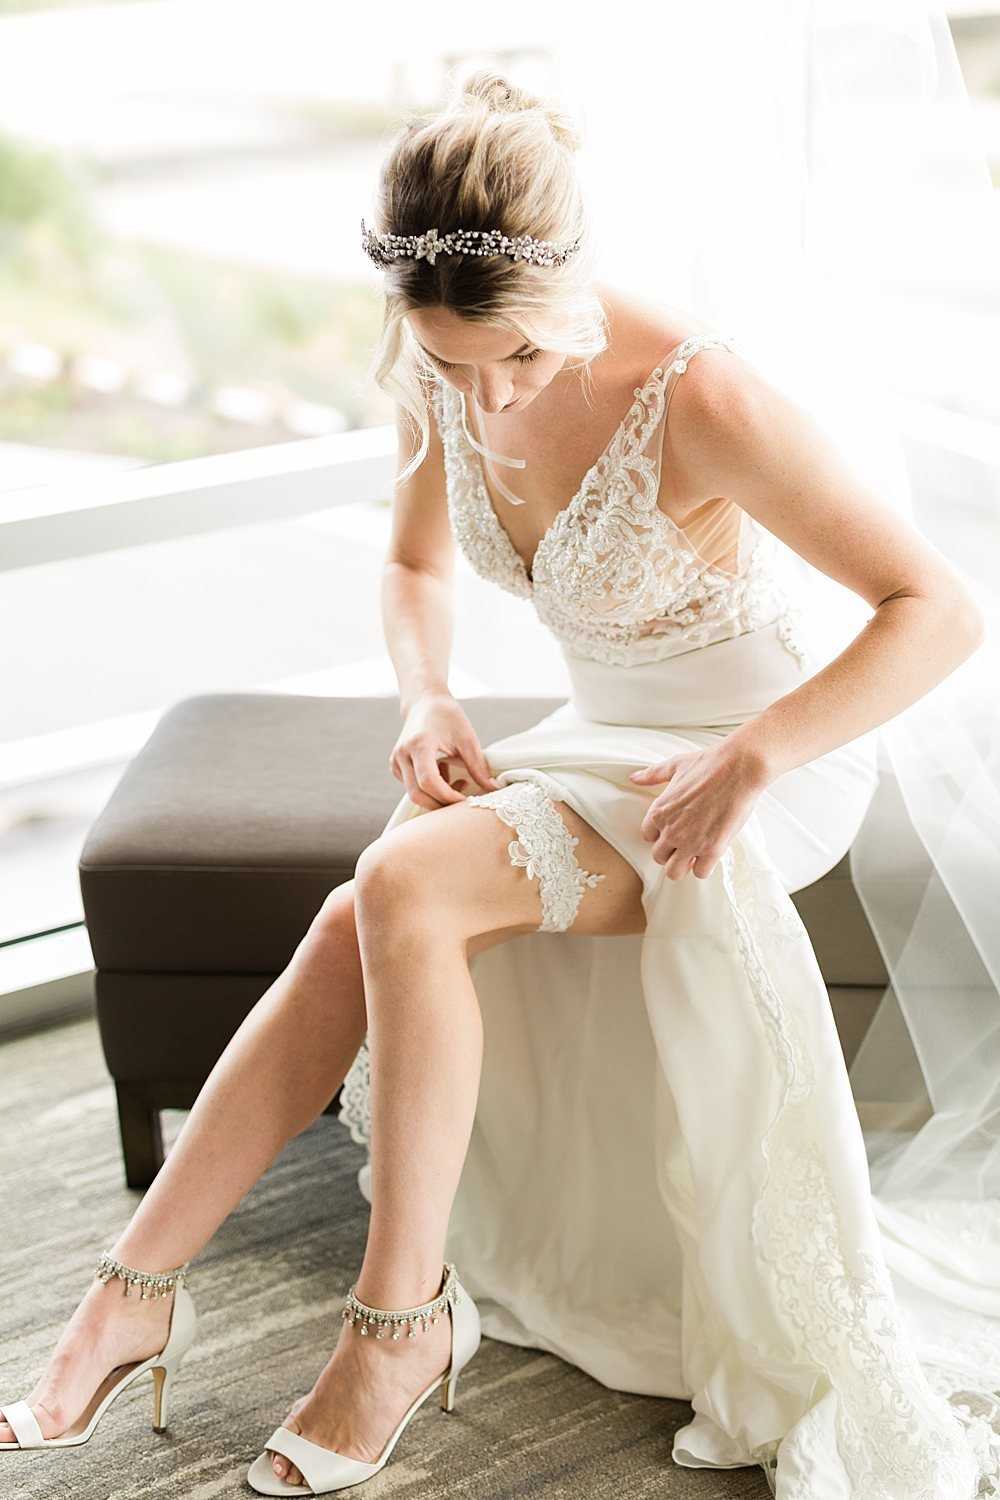 12-Hilton-Garden-Inn-Wausua-Wedding-Prep-James-Stokes-Photography